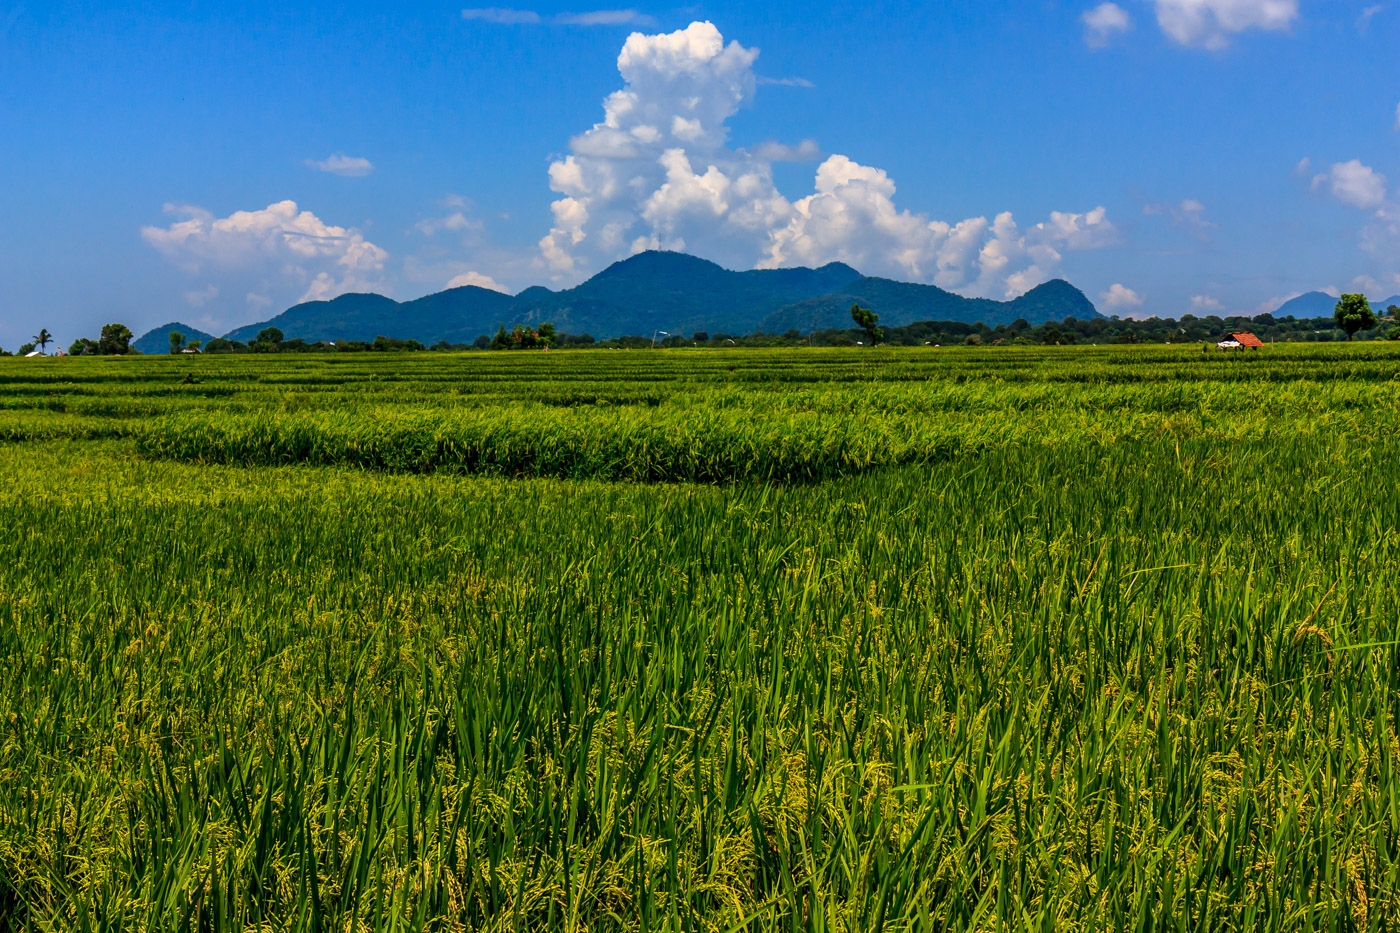 Fields of wheat and mountains gave Sumbawa its own beauty.